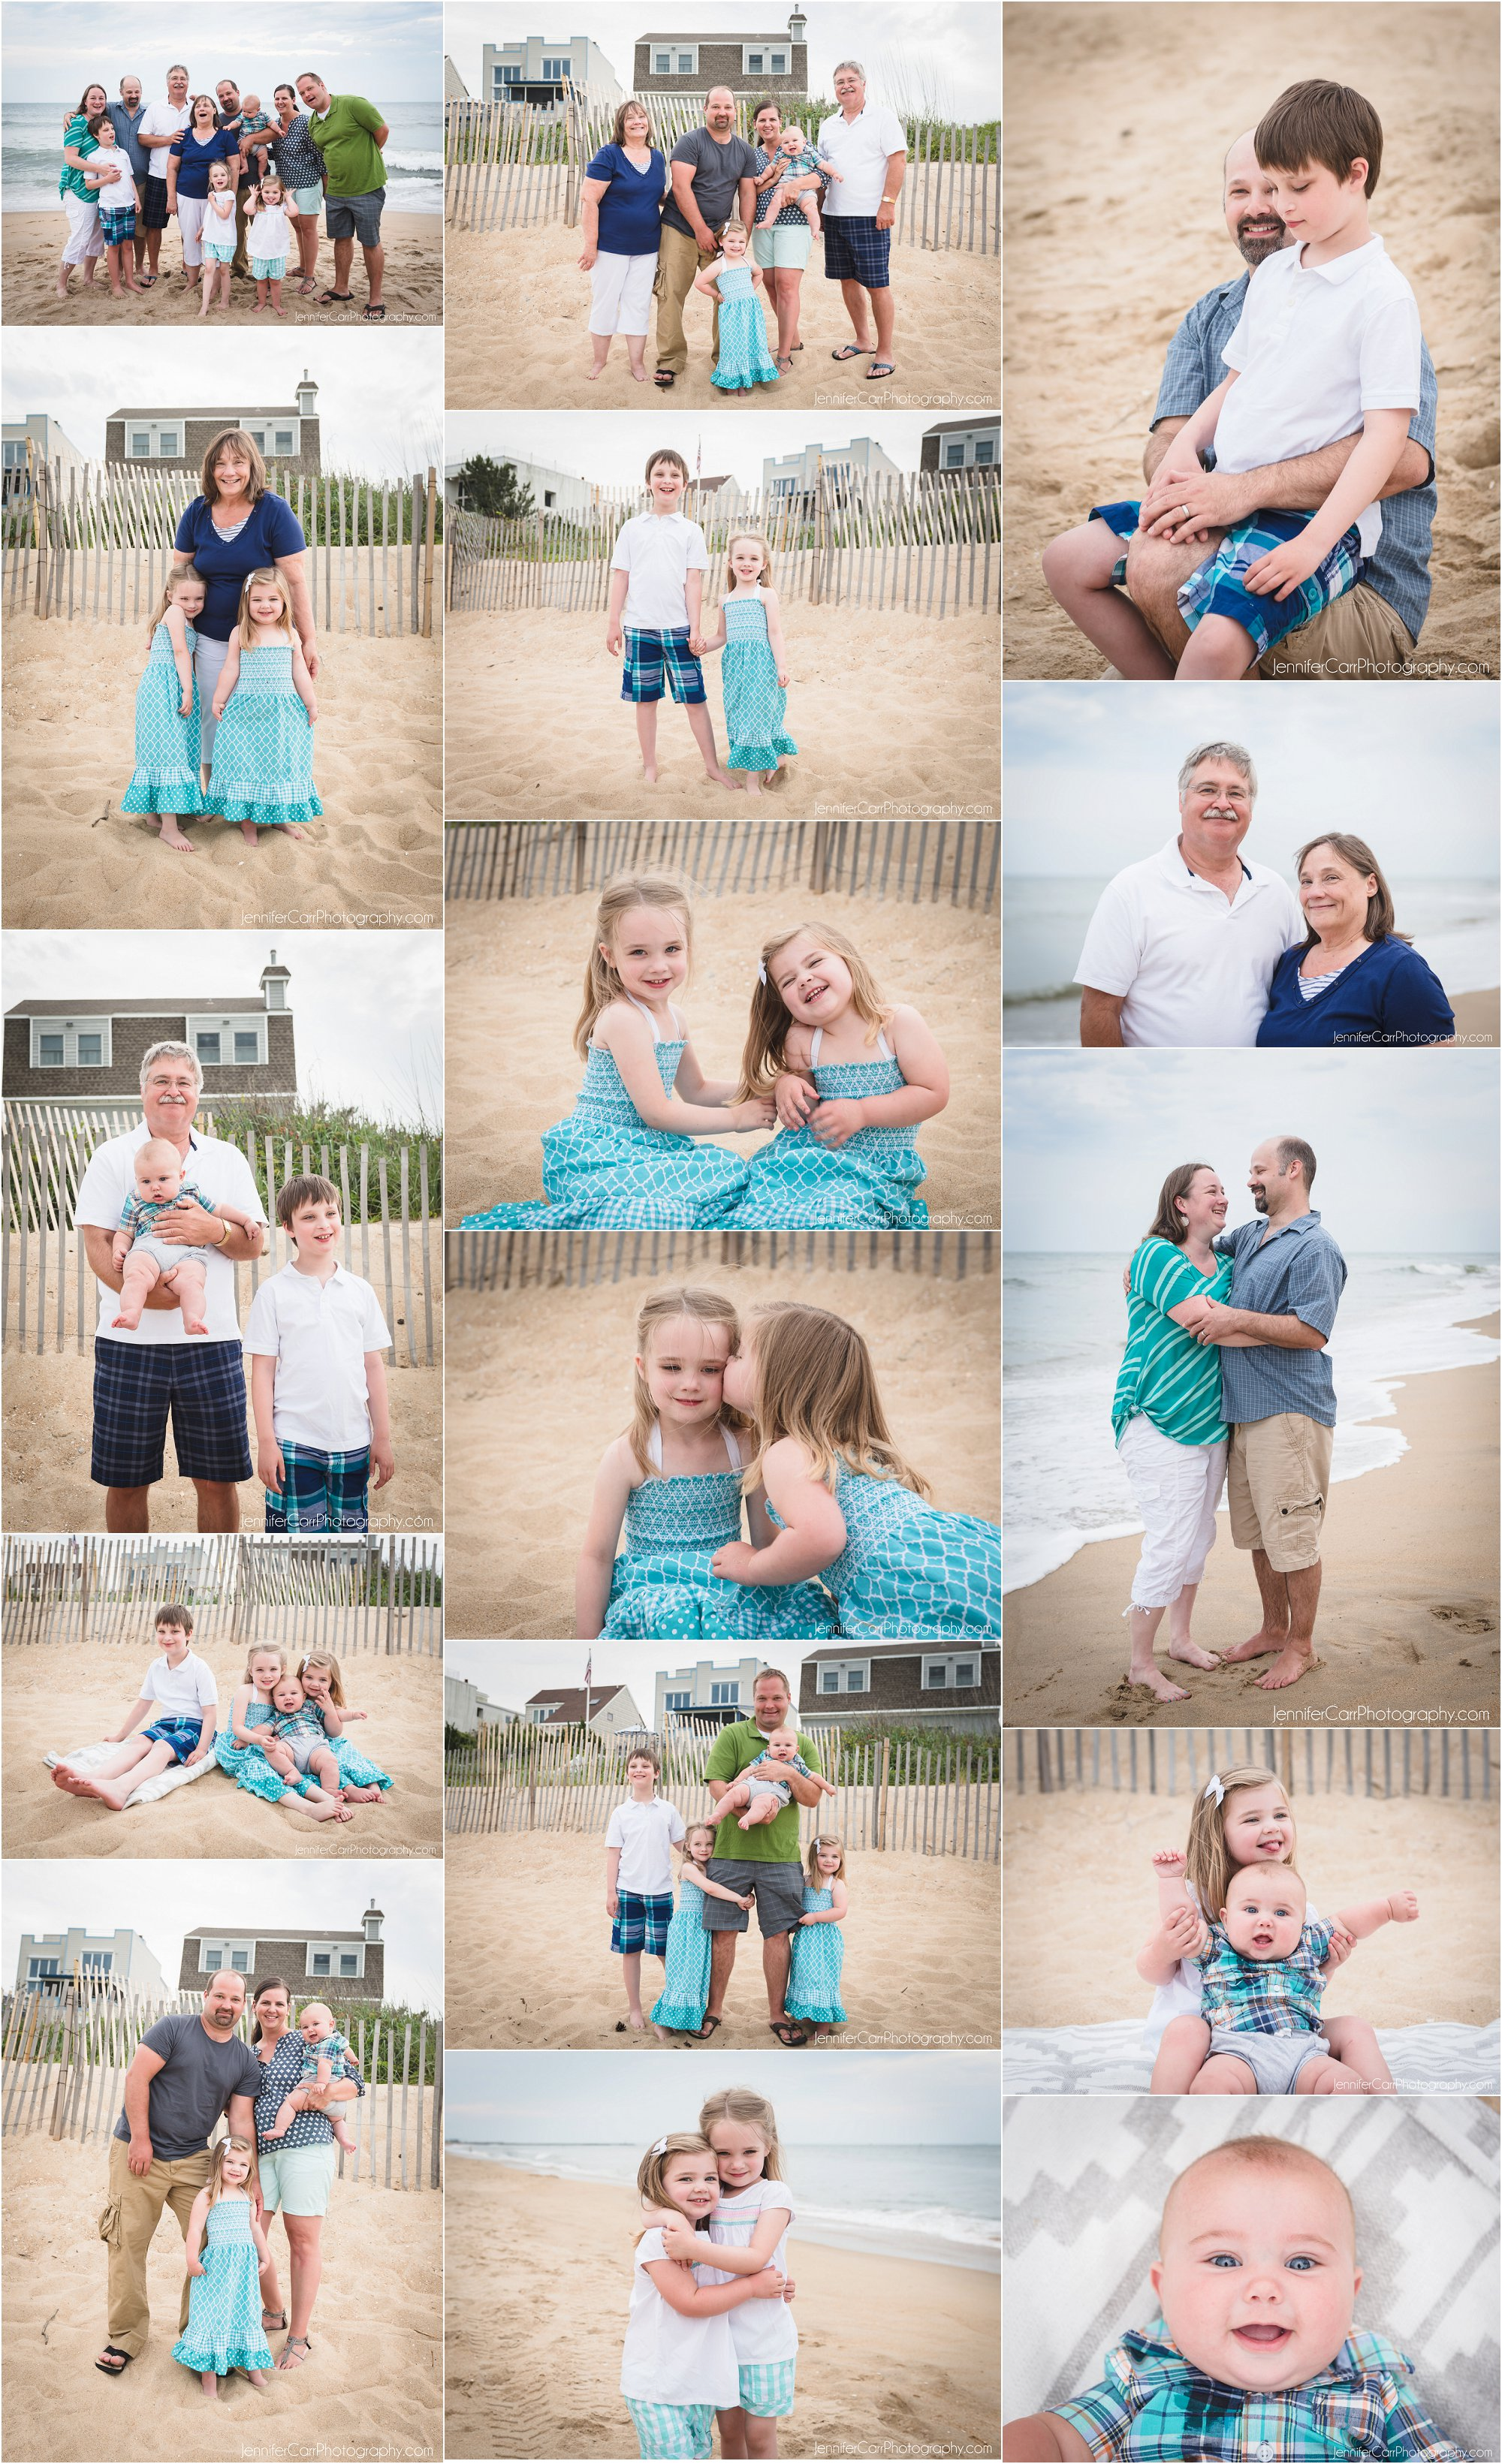 virginia beach family portraits, jennifer carr photography, croatan photographs, vacation portraits